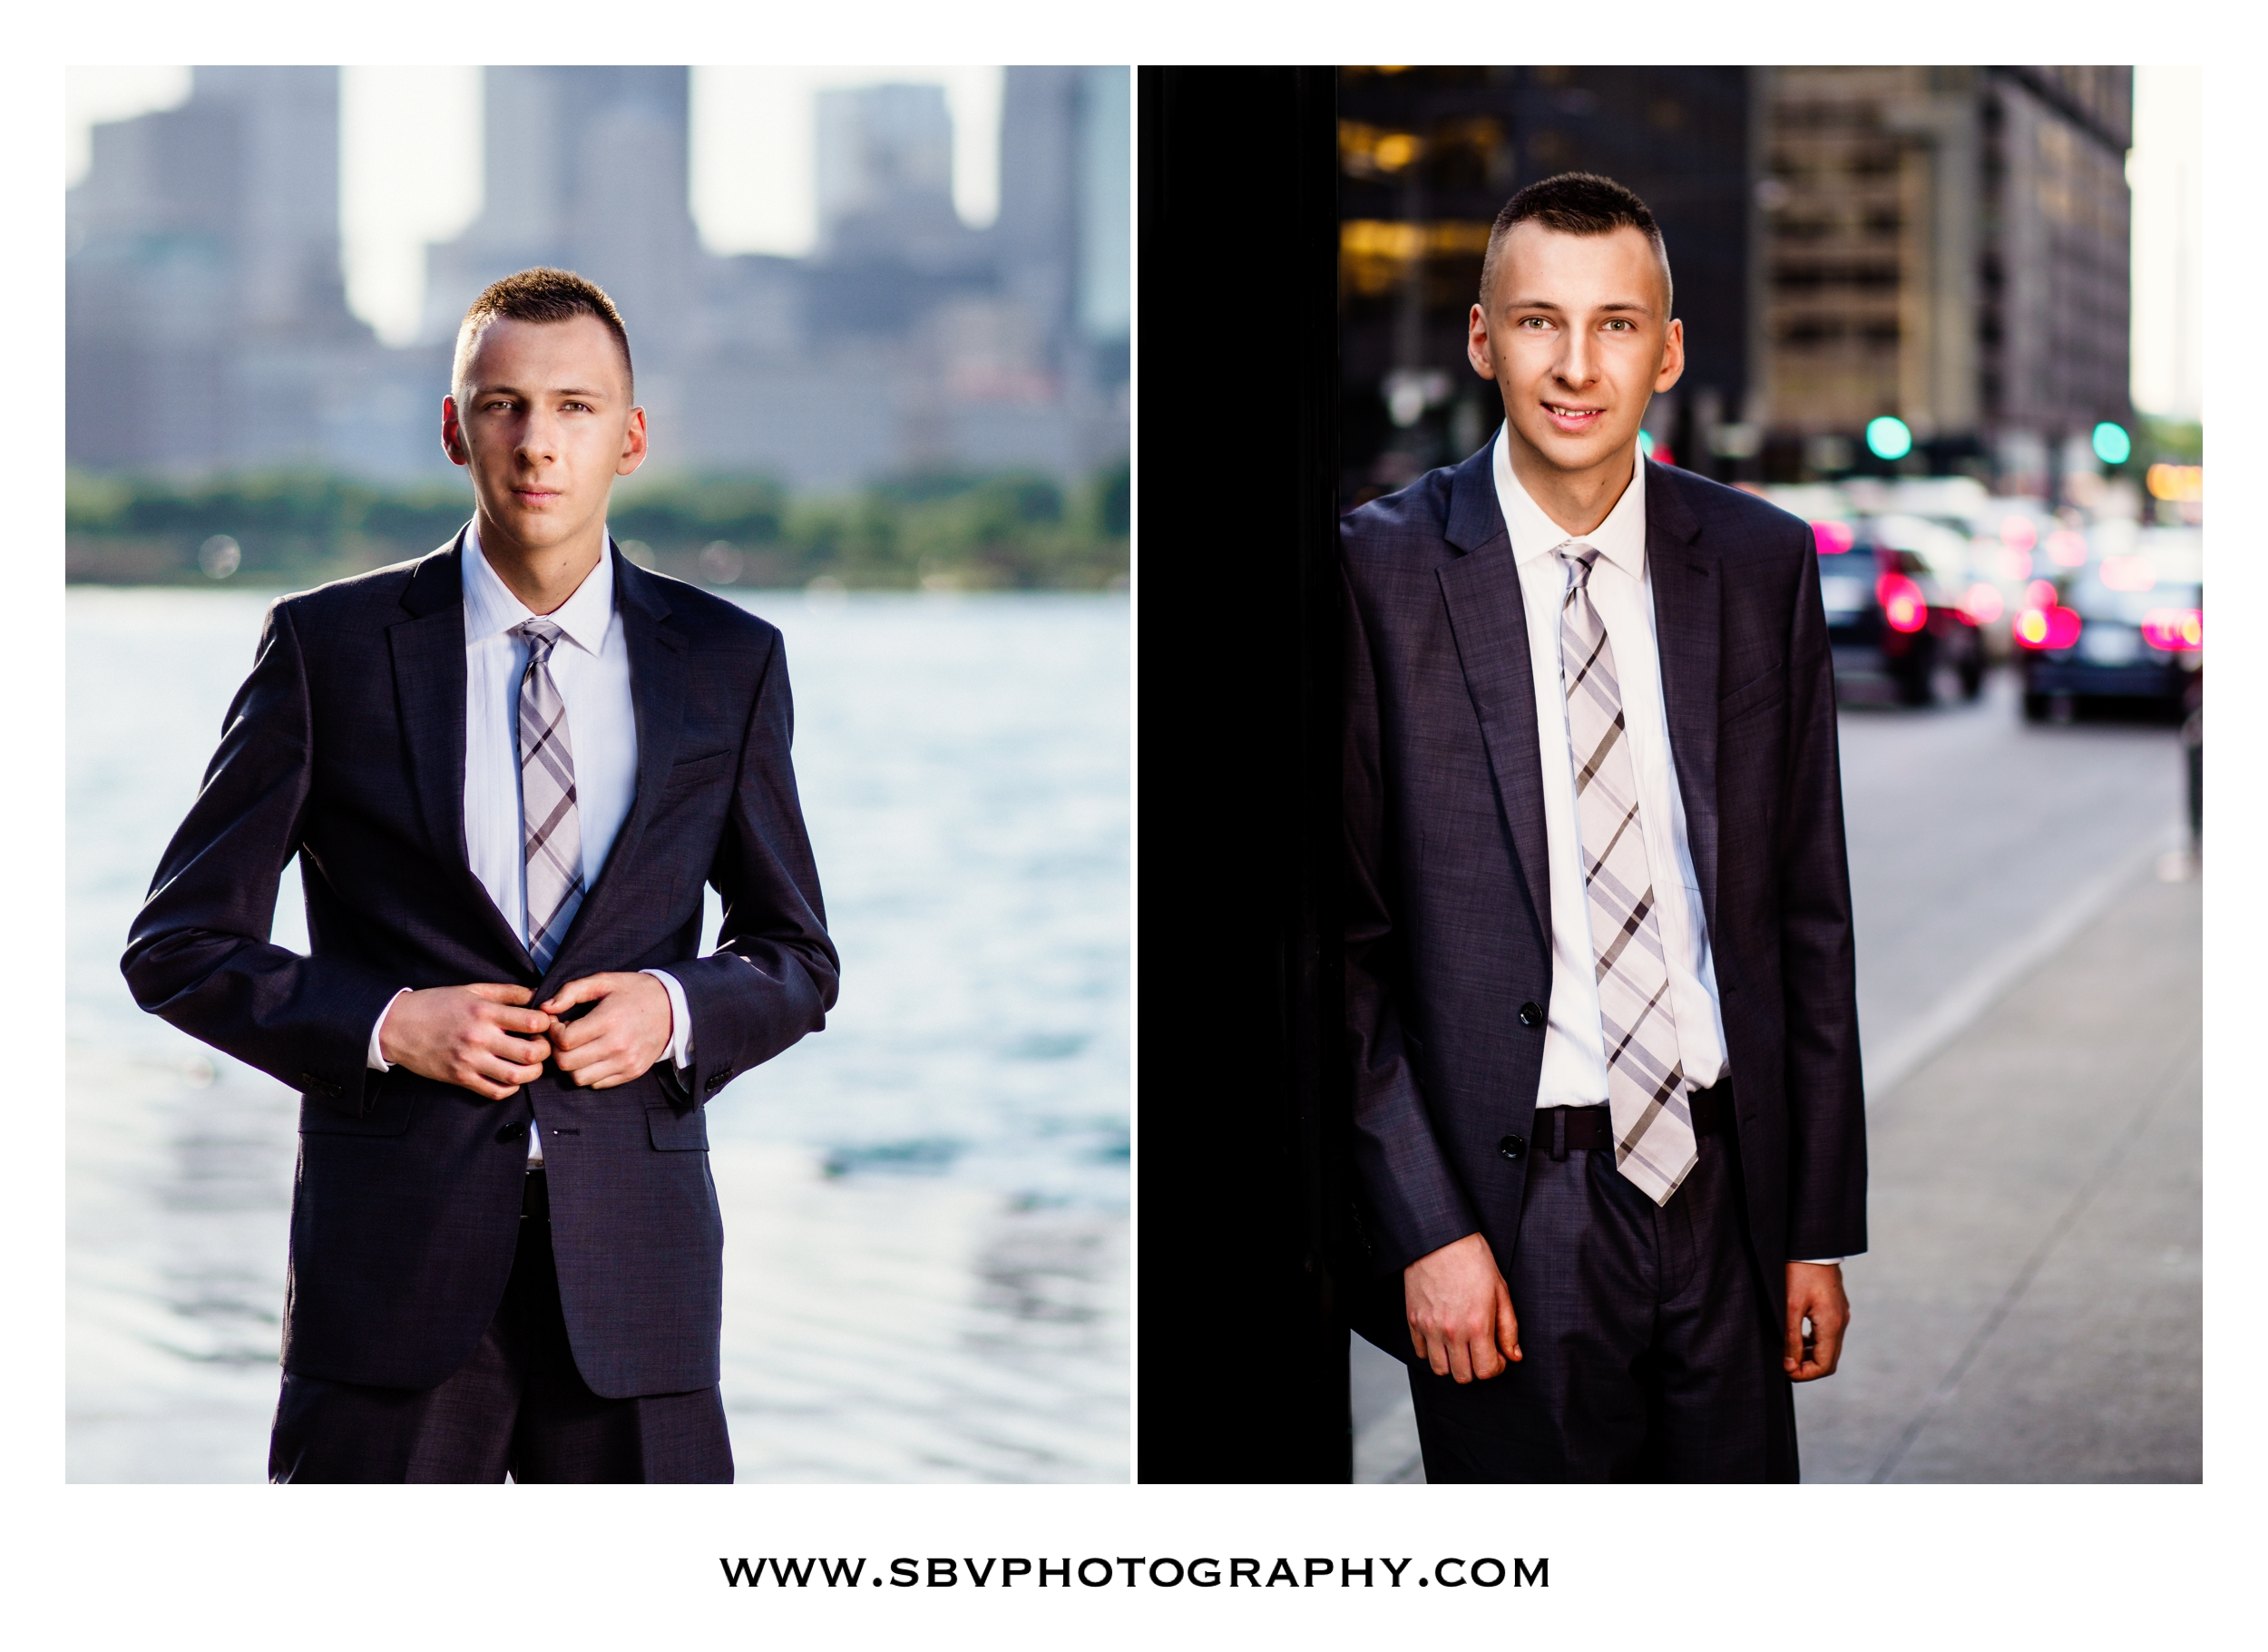 Man about town - a high school senior photo session in Chicago.